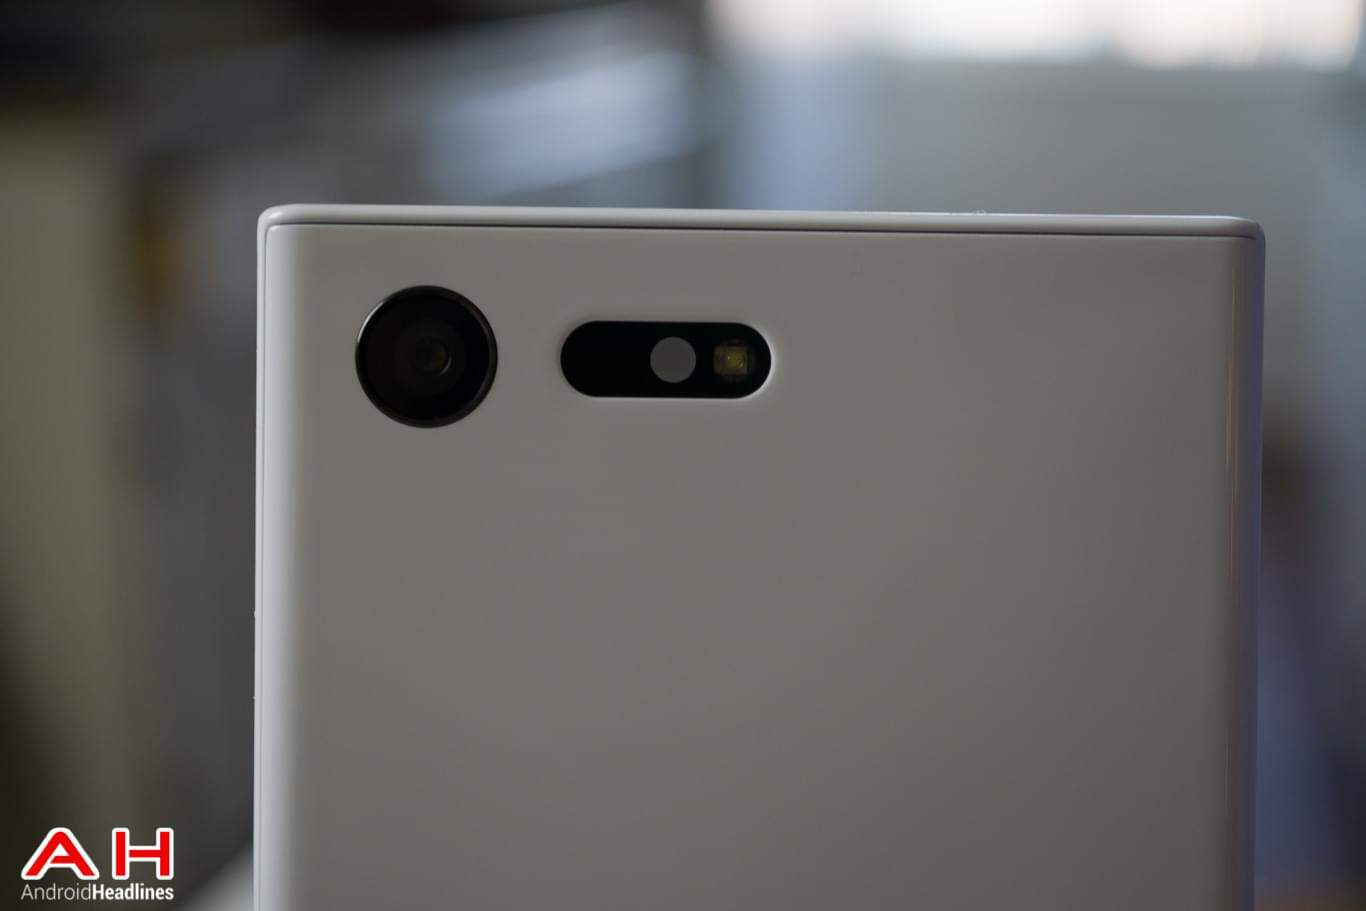 Sony Xperia X Compact AH 15 review sony xperia x compact androidheadlines com  at creativeand.co